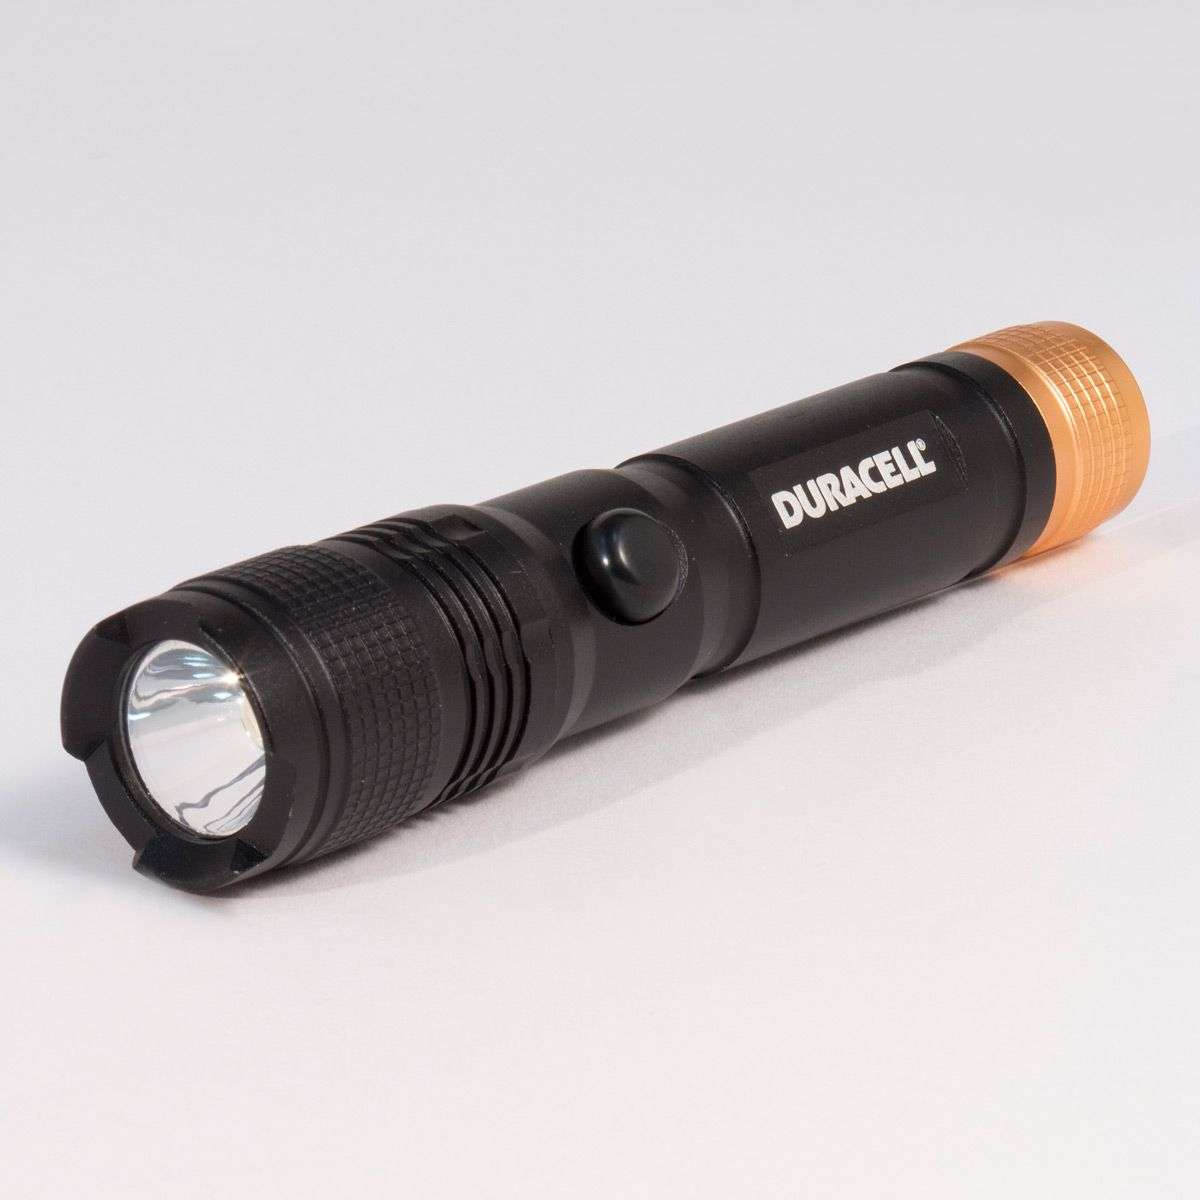 Compact CMP-7 LED torch-2610018-31